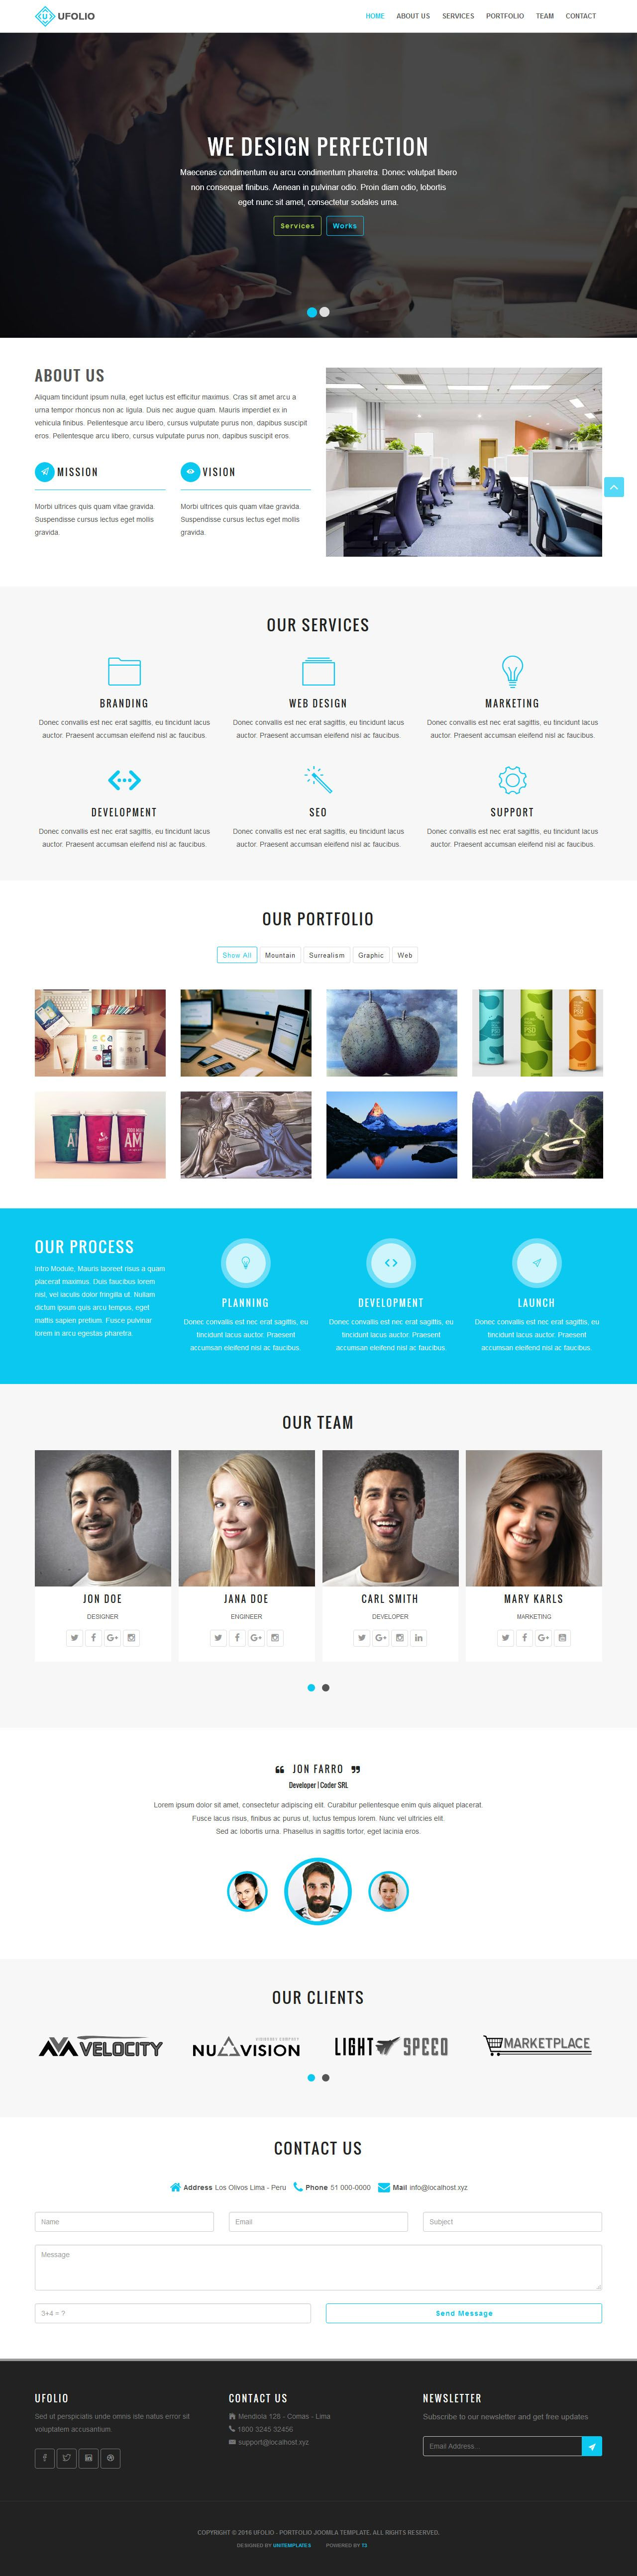 Ufolio - Portfolio Joomla Template Screenshot 6